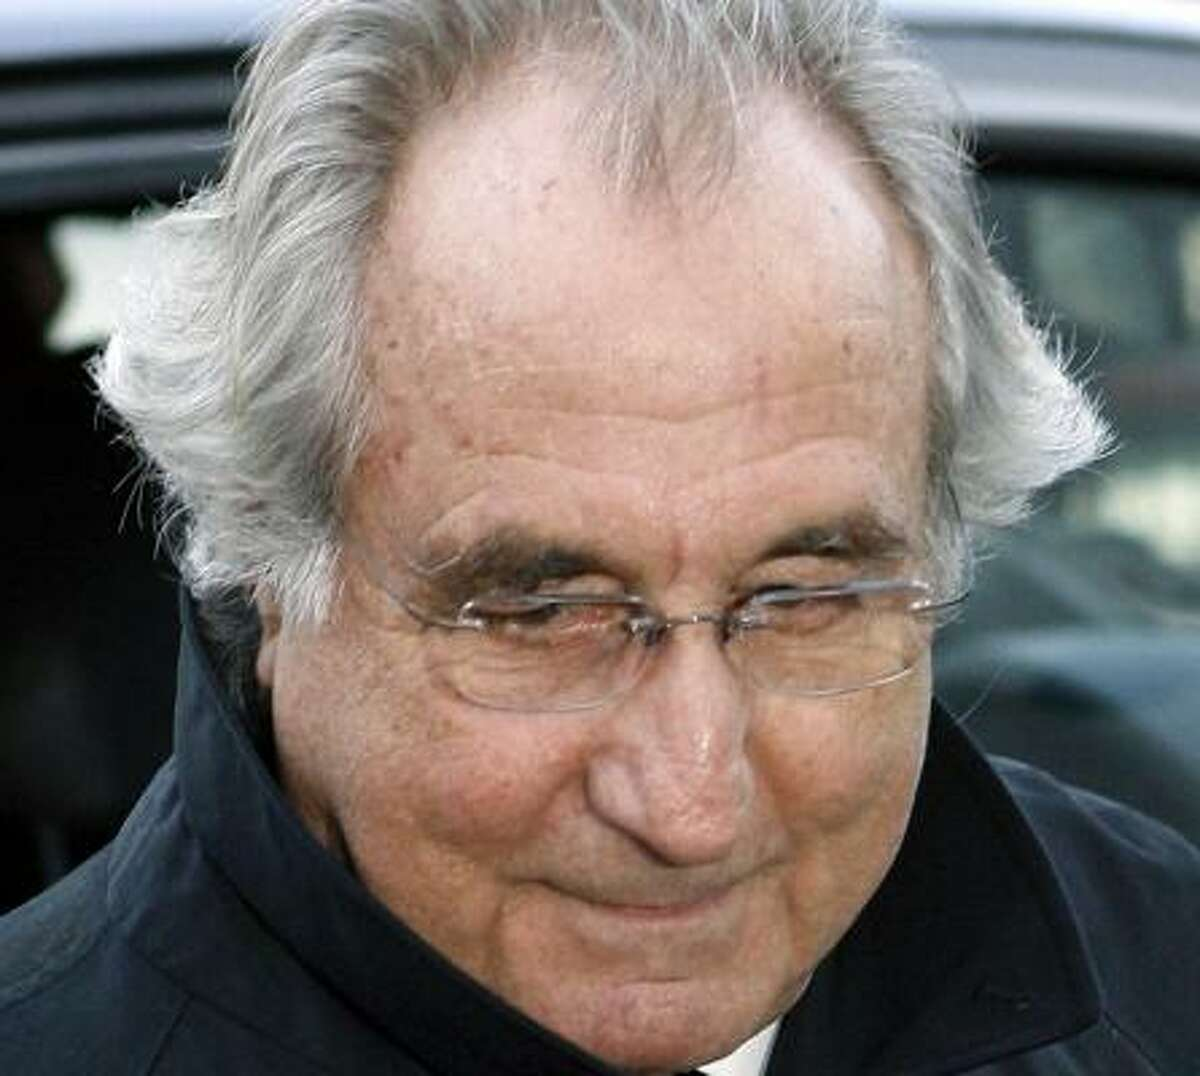 Bernard Madoff, 71, is serving a 150-year sentence after pleading guilty in March to a scheme that authorities say cost thousands of investors at least $13 billion.